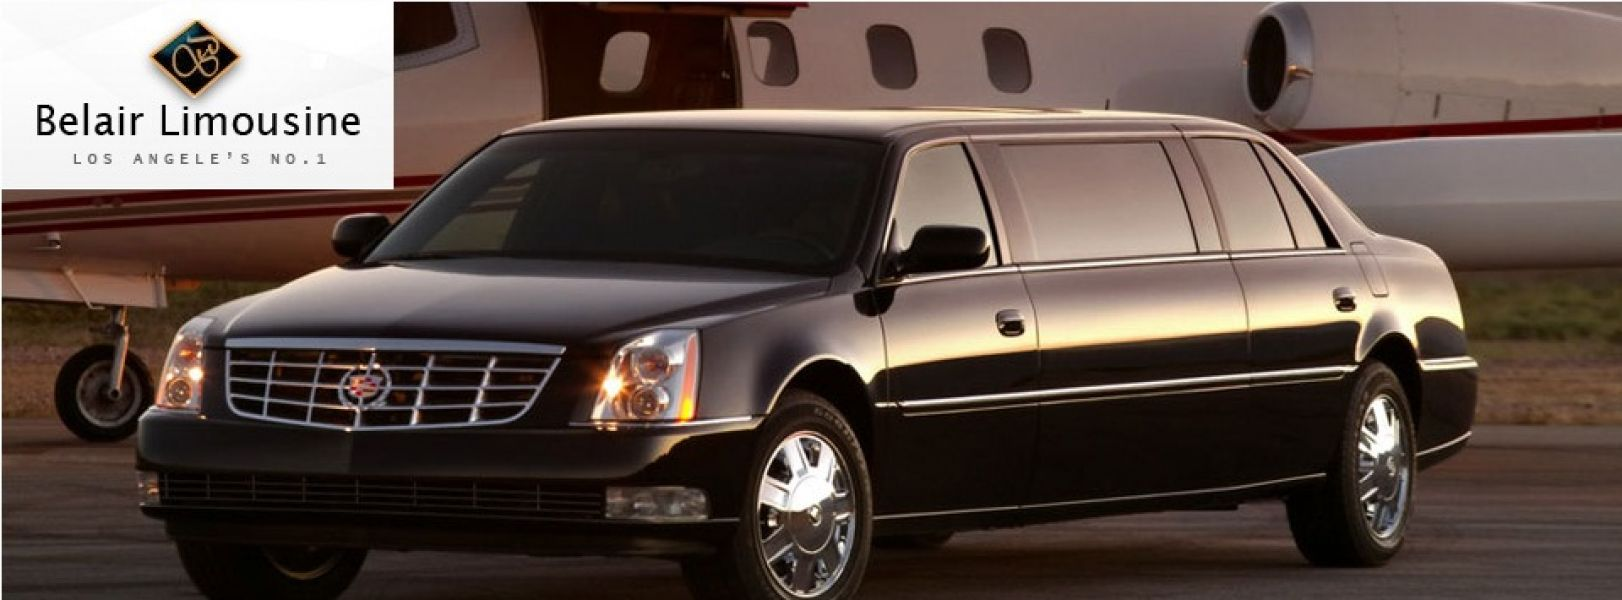 Bel Air Limousine in Los Angeles